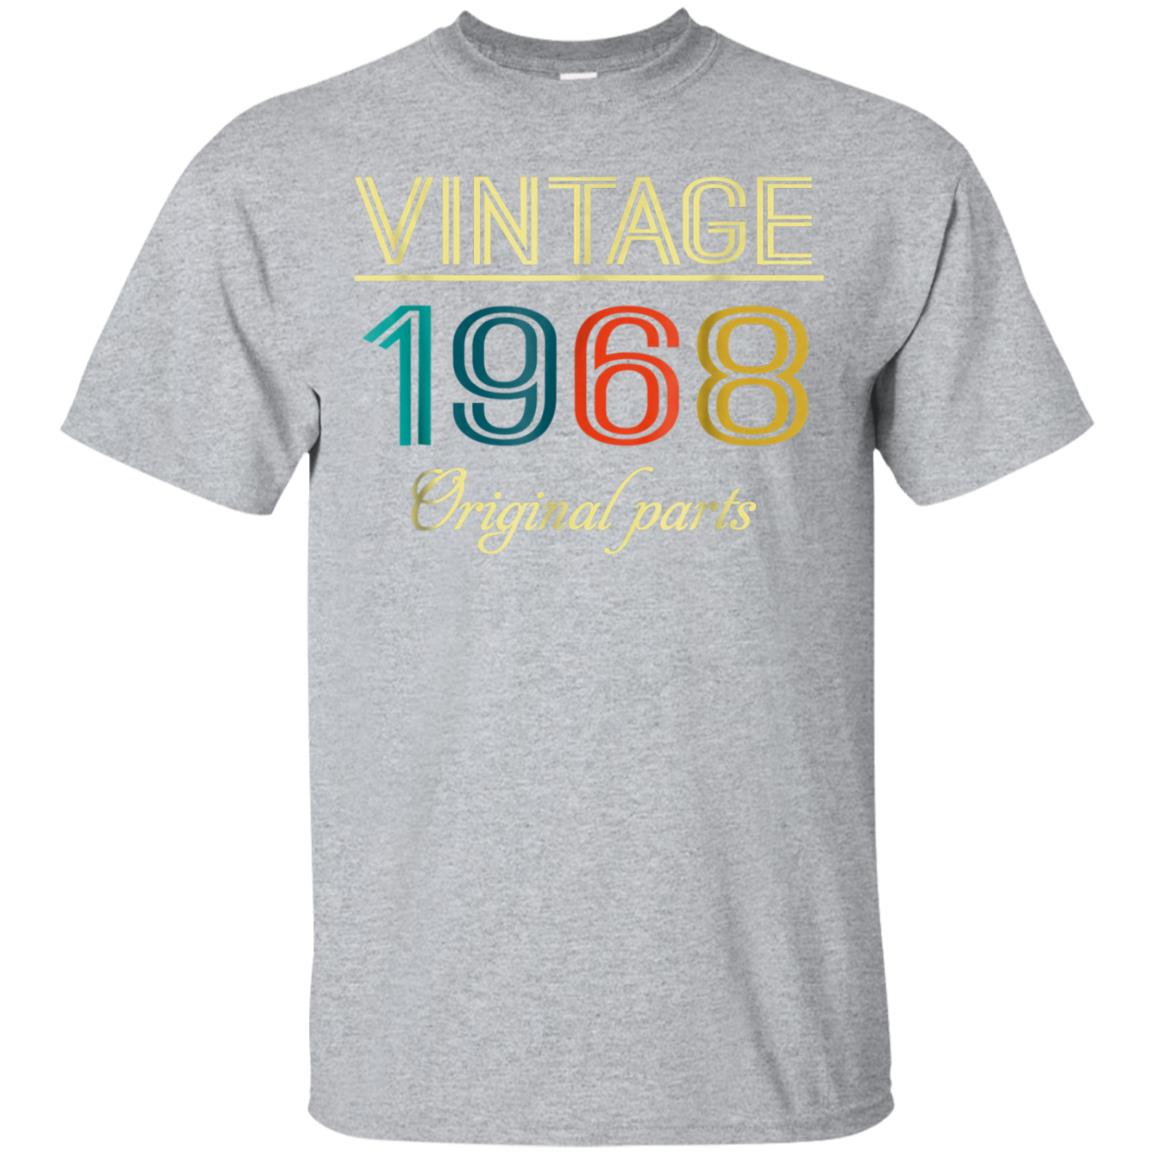 Vintage 1968 Funny Old School 50th Retro Gift T-shirt 99promocode